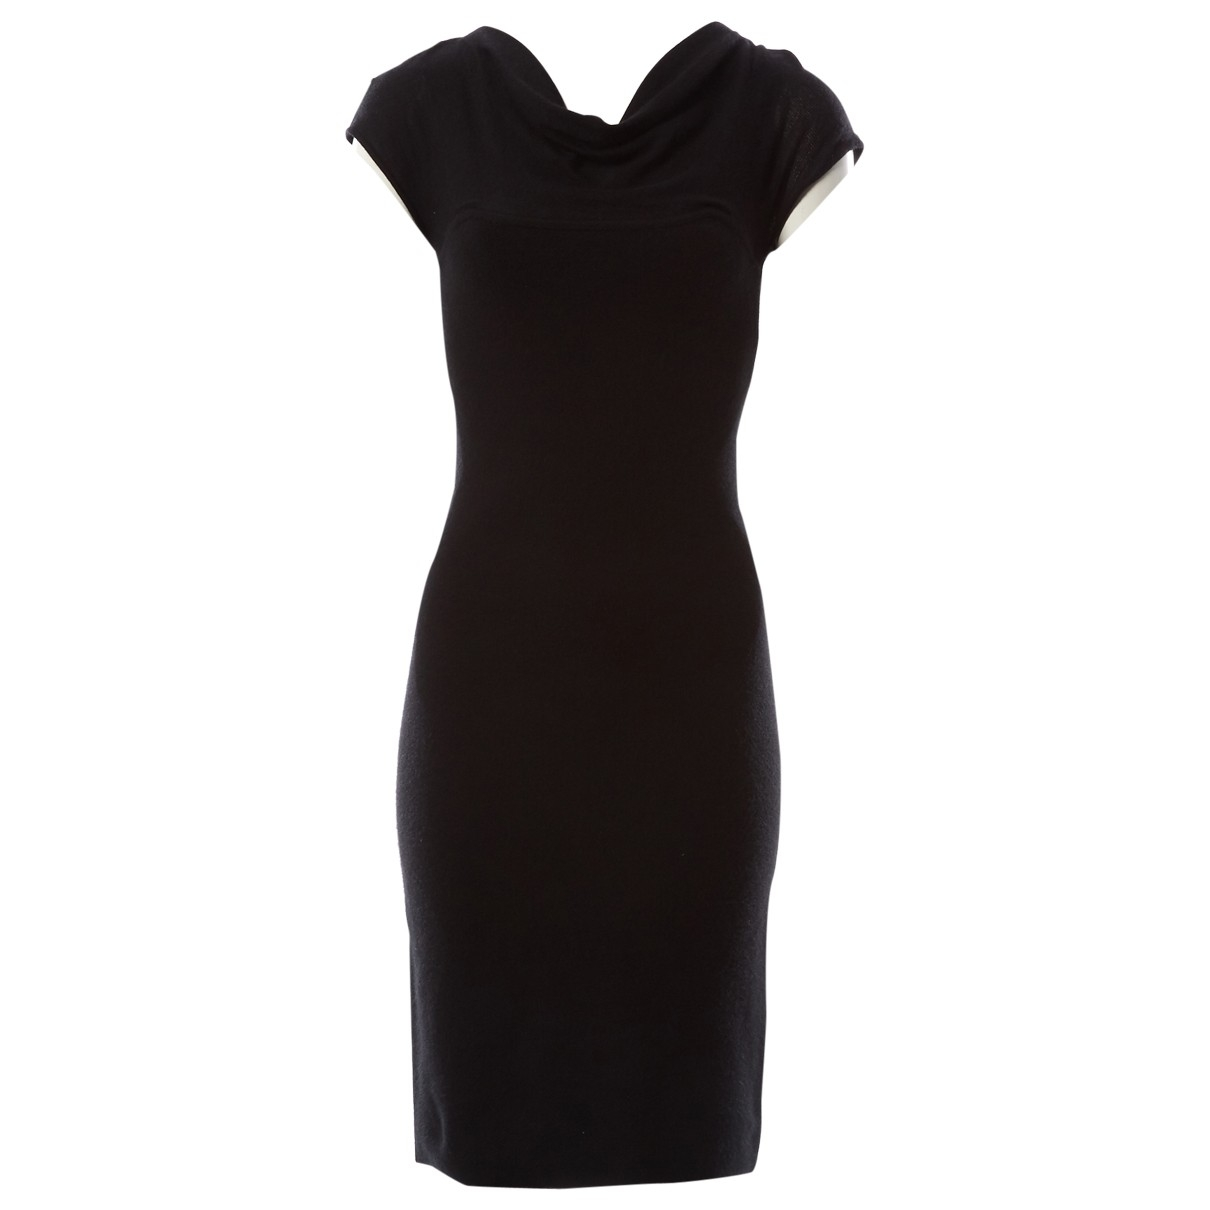 Narciso Rodriguez \N Black Cashmere dress for Women 40 IT